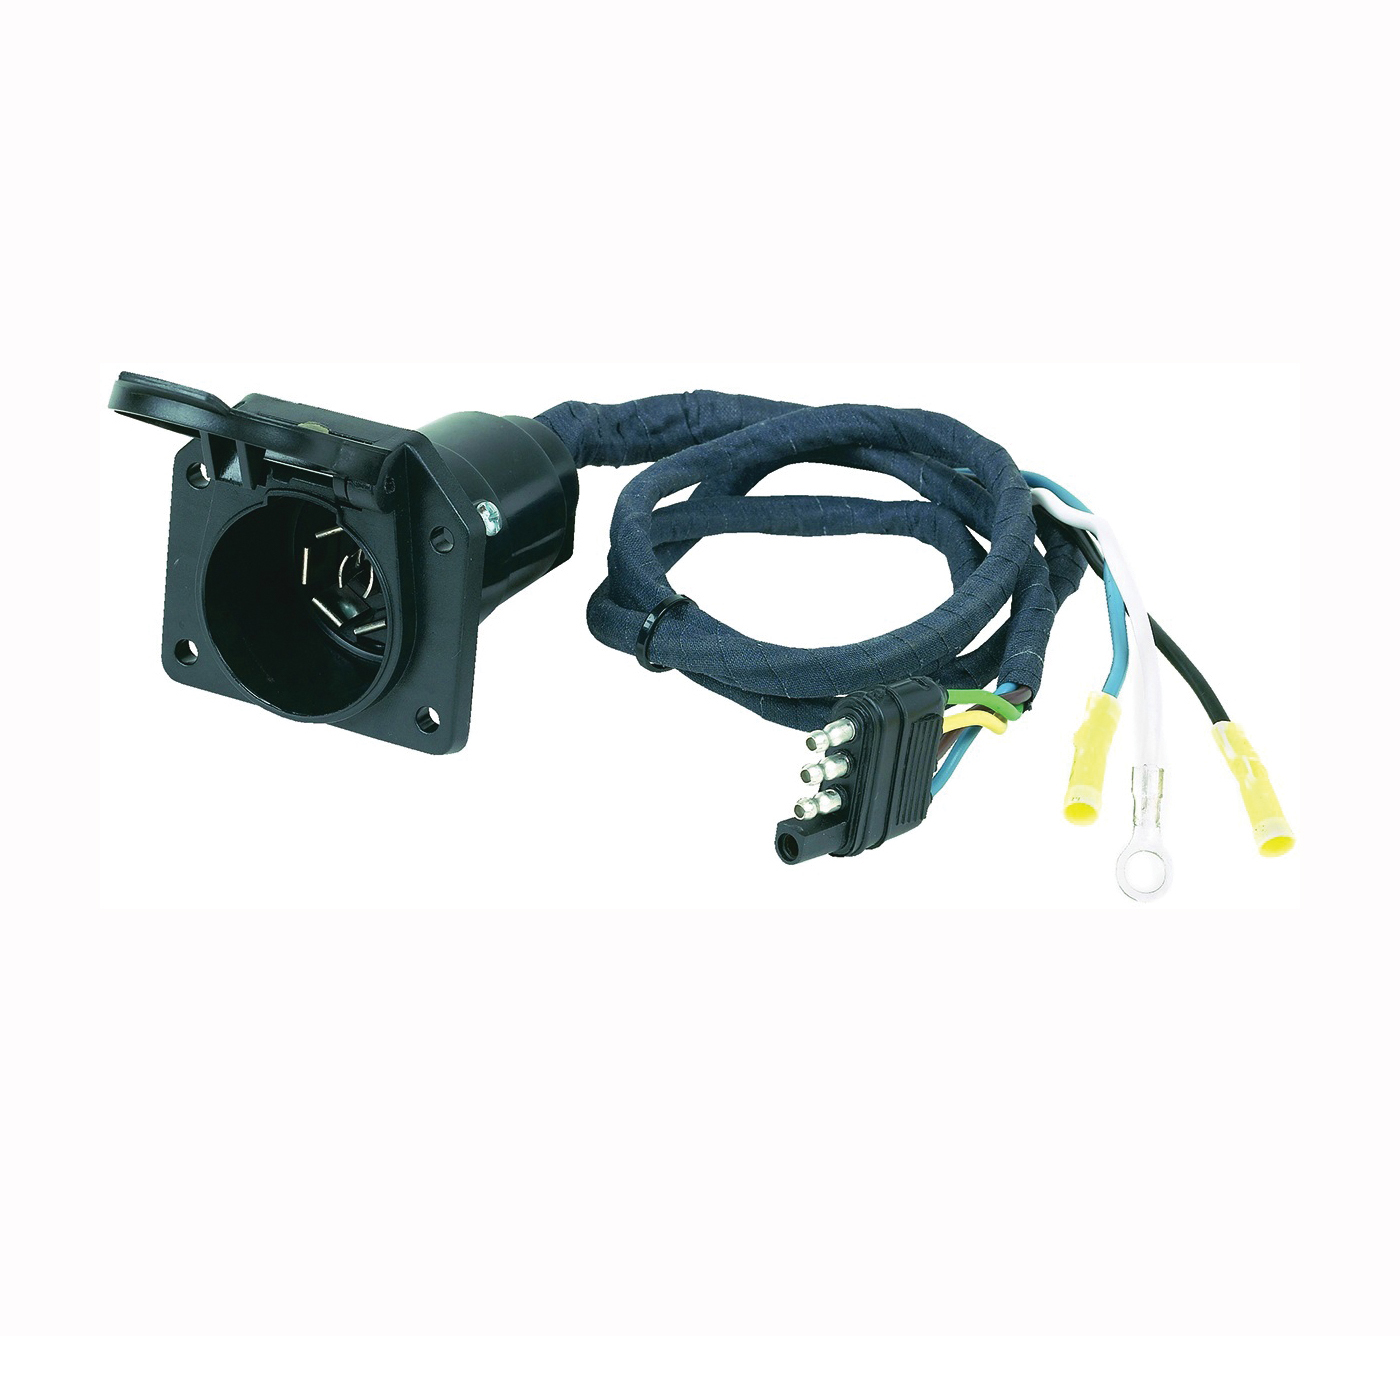 Picture of HOPKINS 47205 Trailer Wiring Adapter